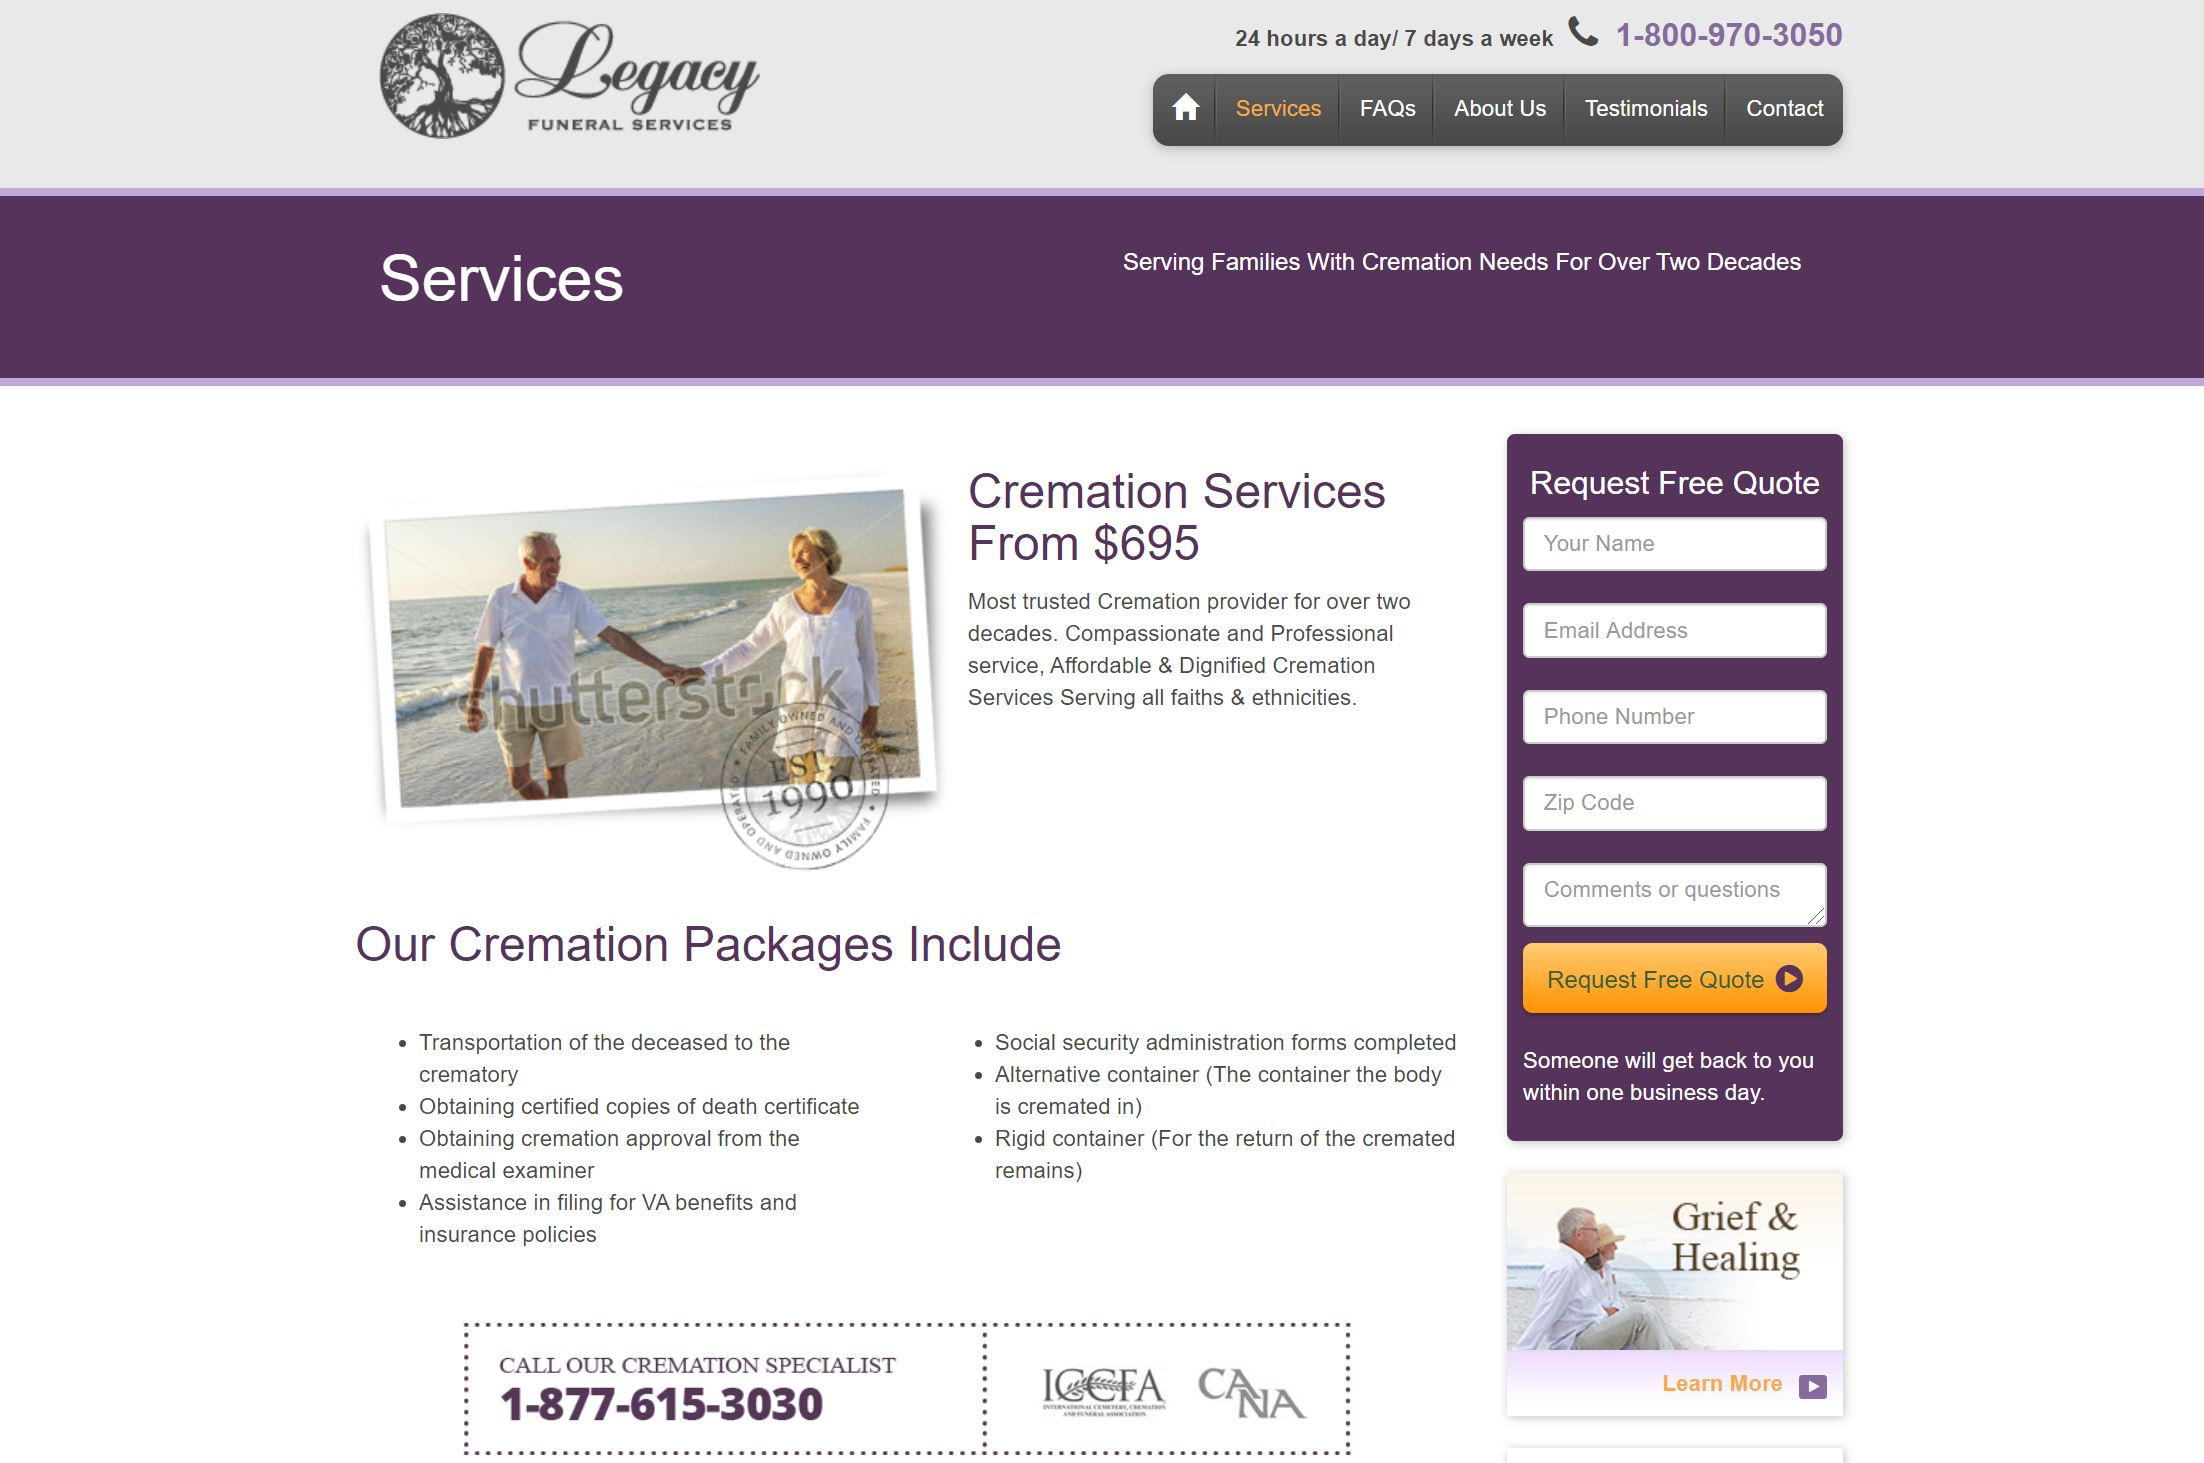 Legacy Funeral Services website